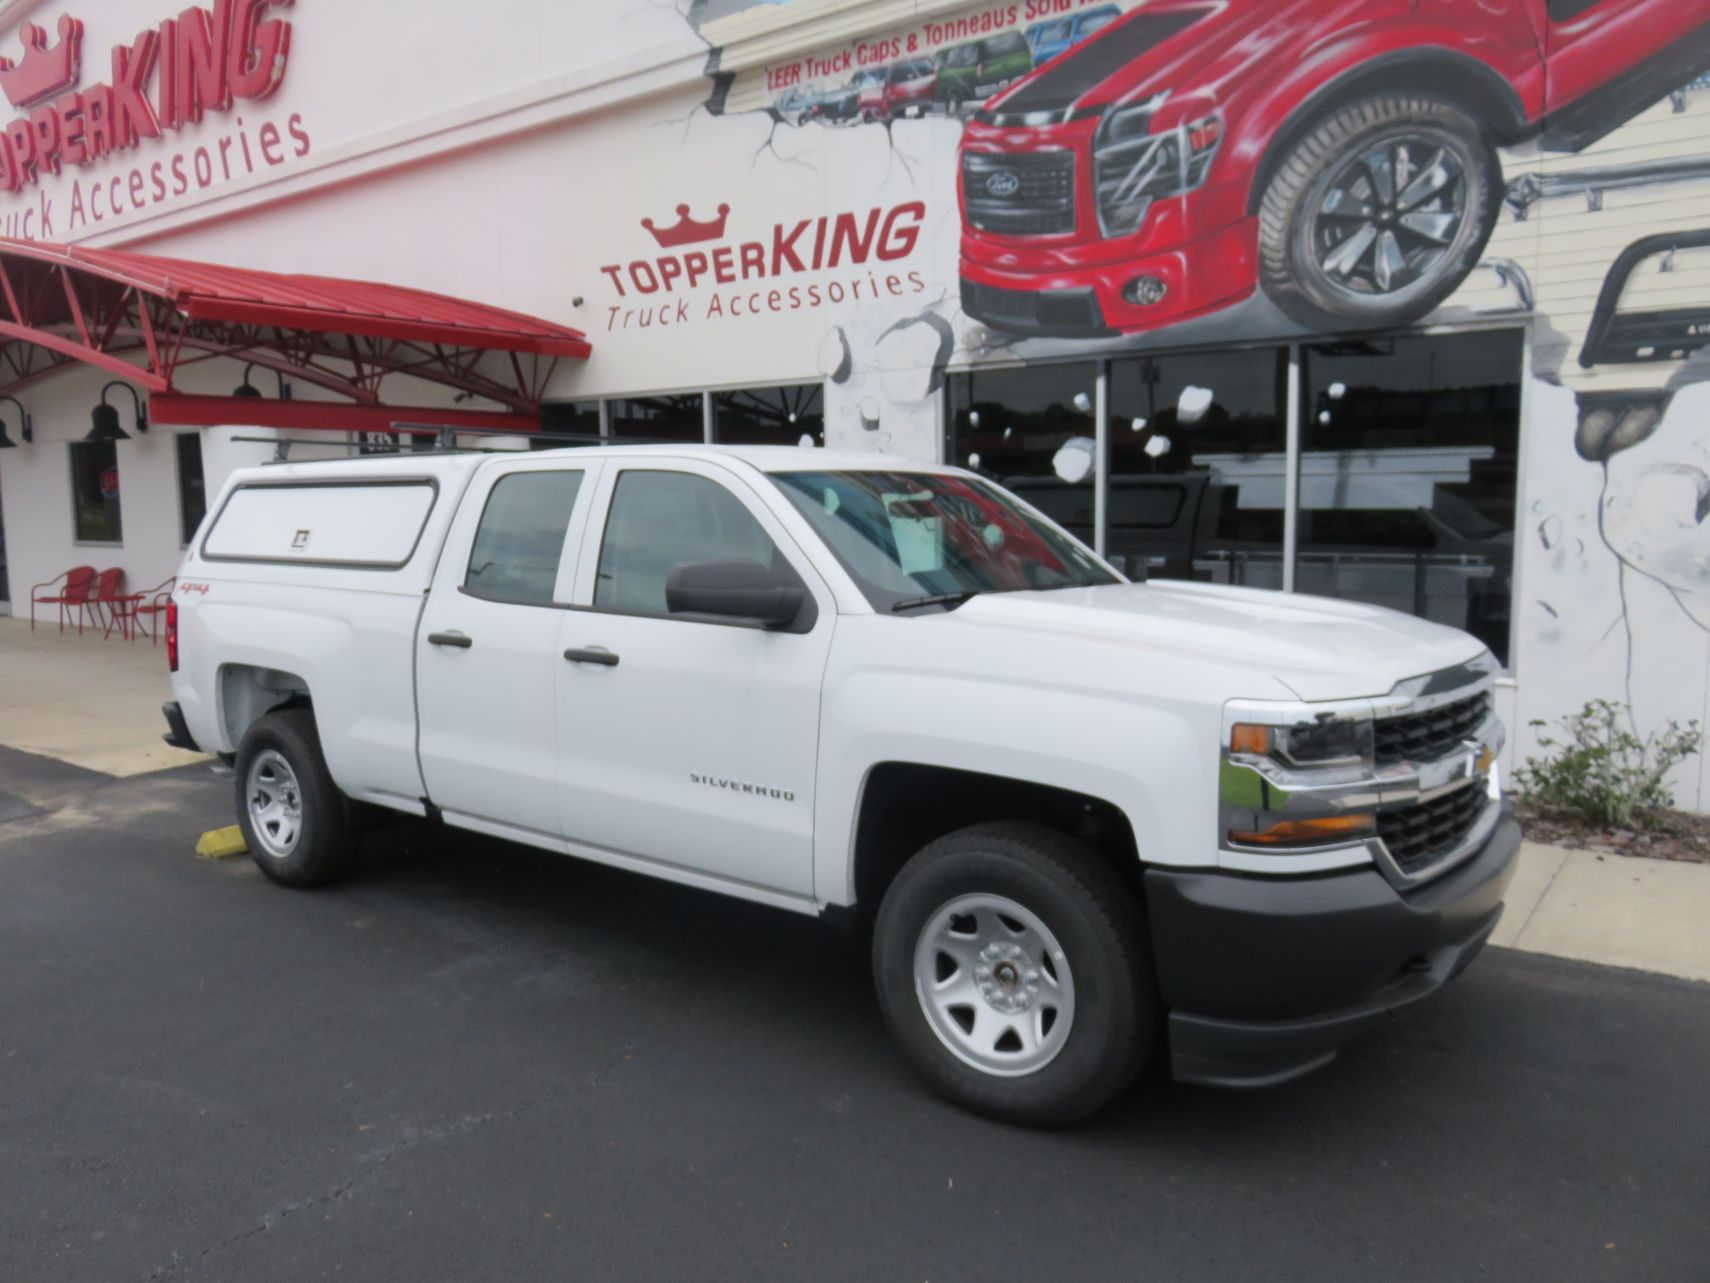 2018 Chevy Silverado with LEER 100RCC, Roof Rack, and Custom Hitch by TopperKING in Brandon, FL 813-689-2449 or Clearwater, FL 727-530-9066. Call today!